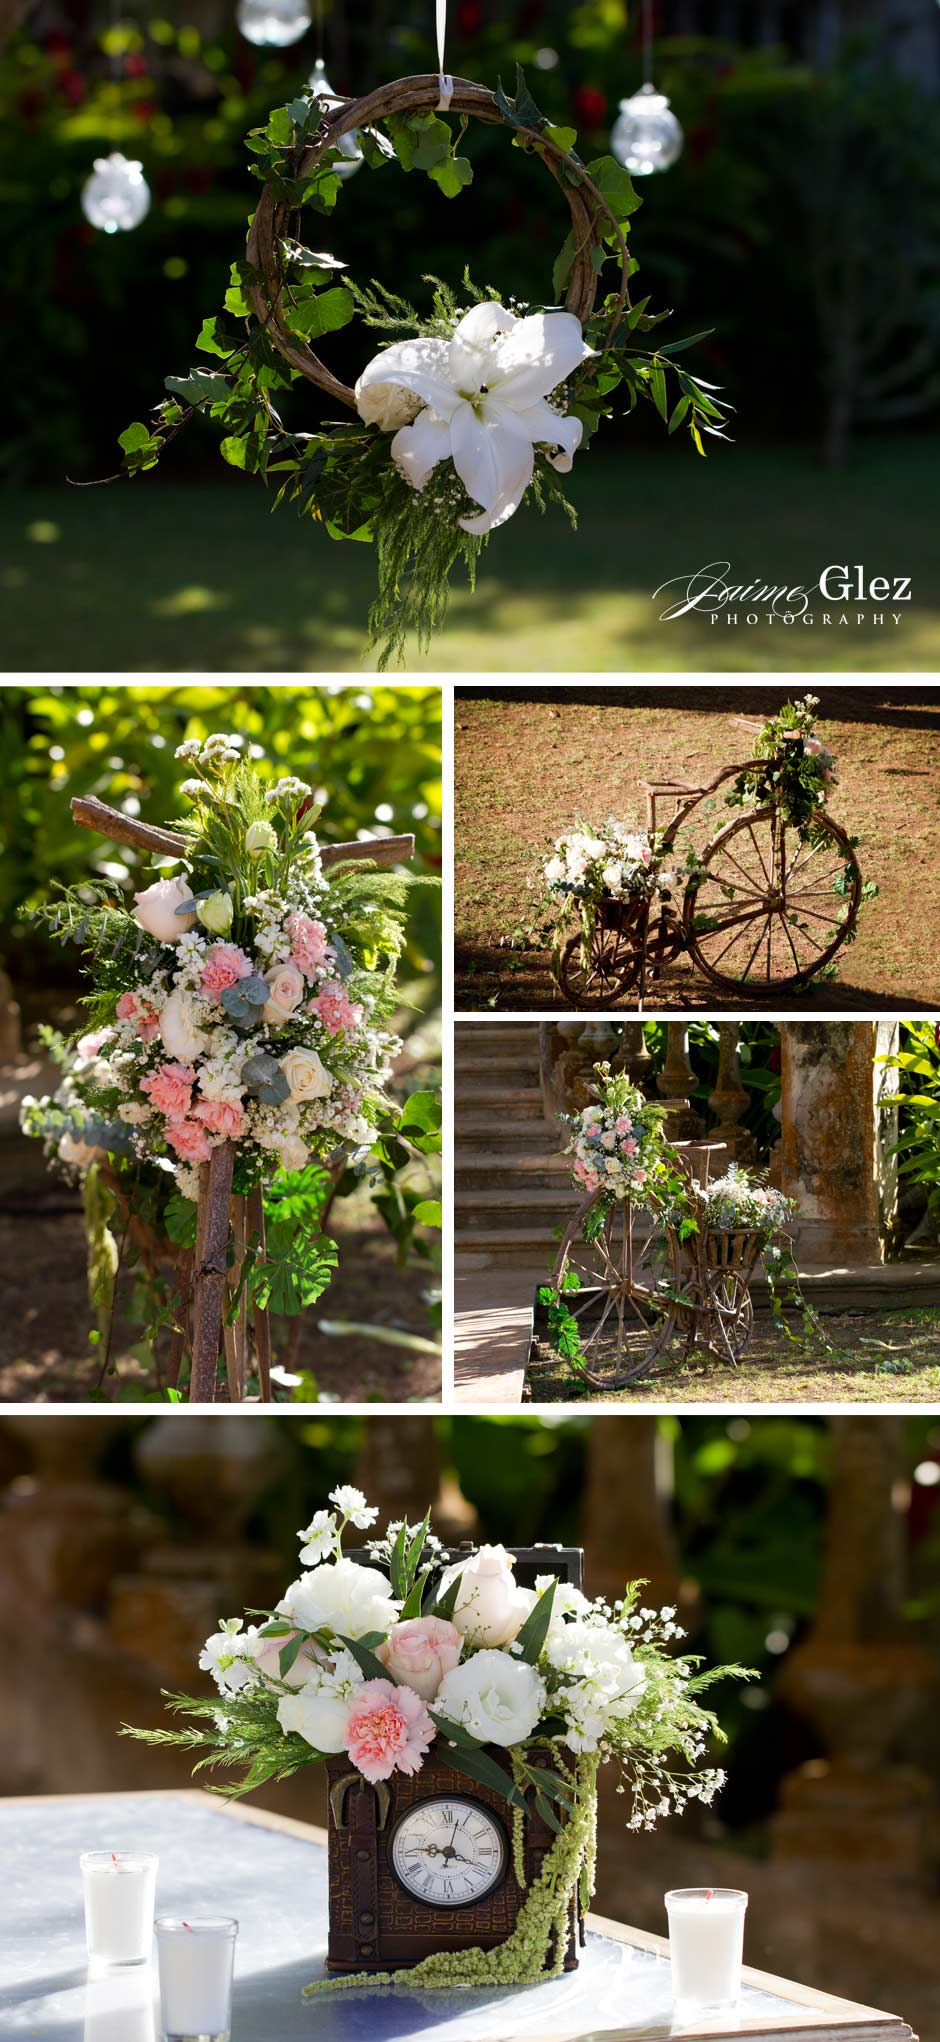 Fresh and sweet wedding floral arrangements with a vintage touch!